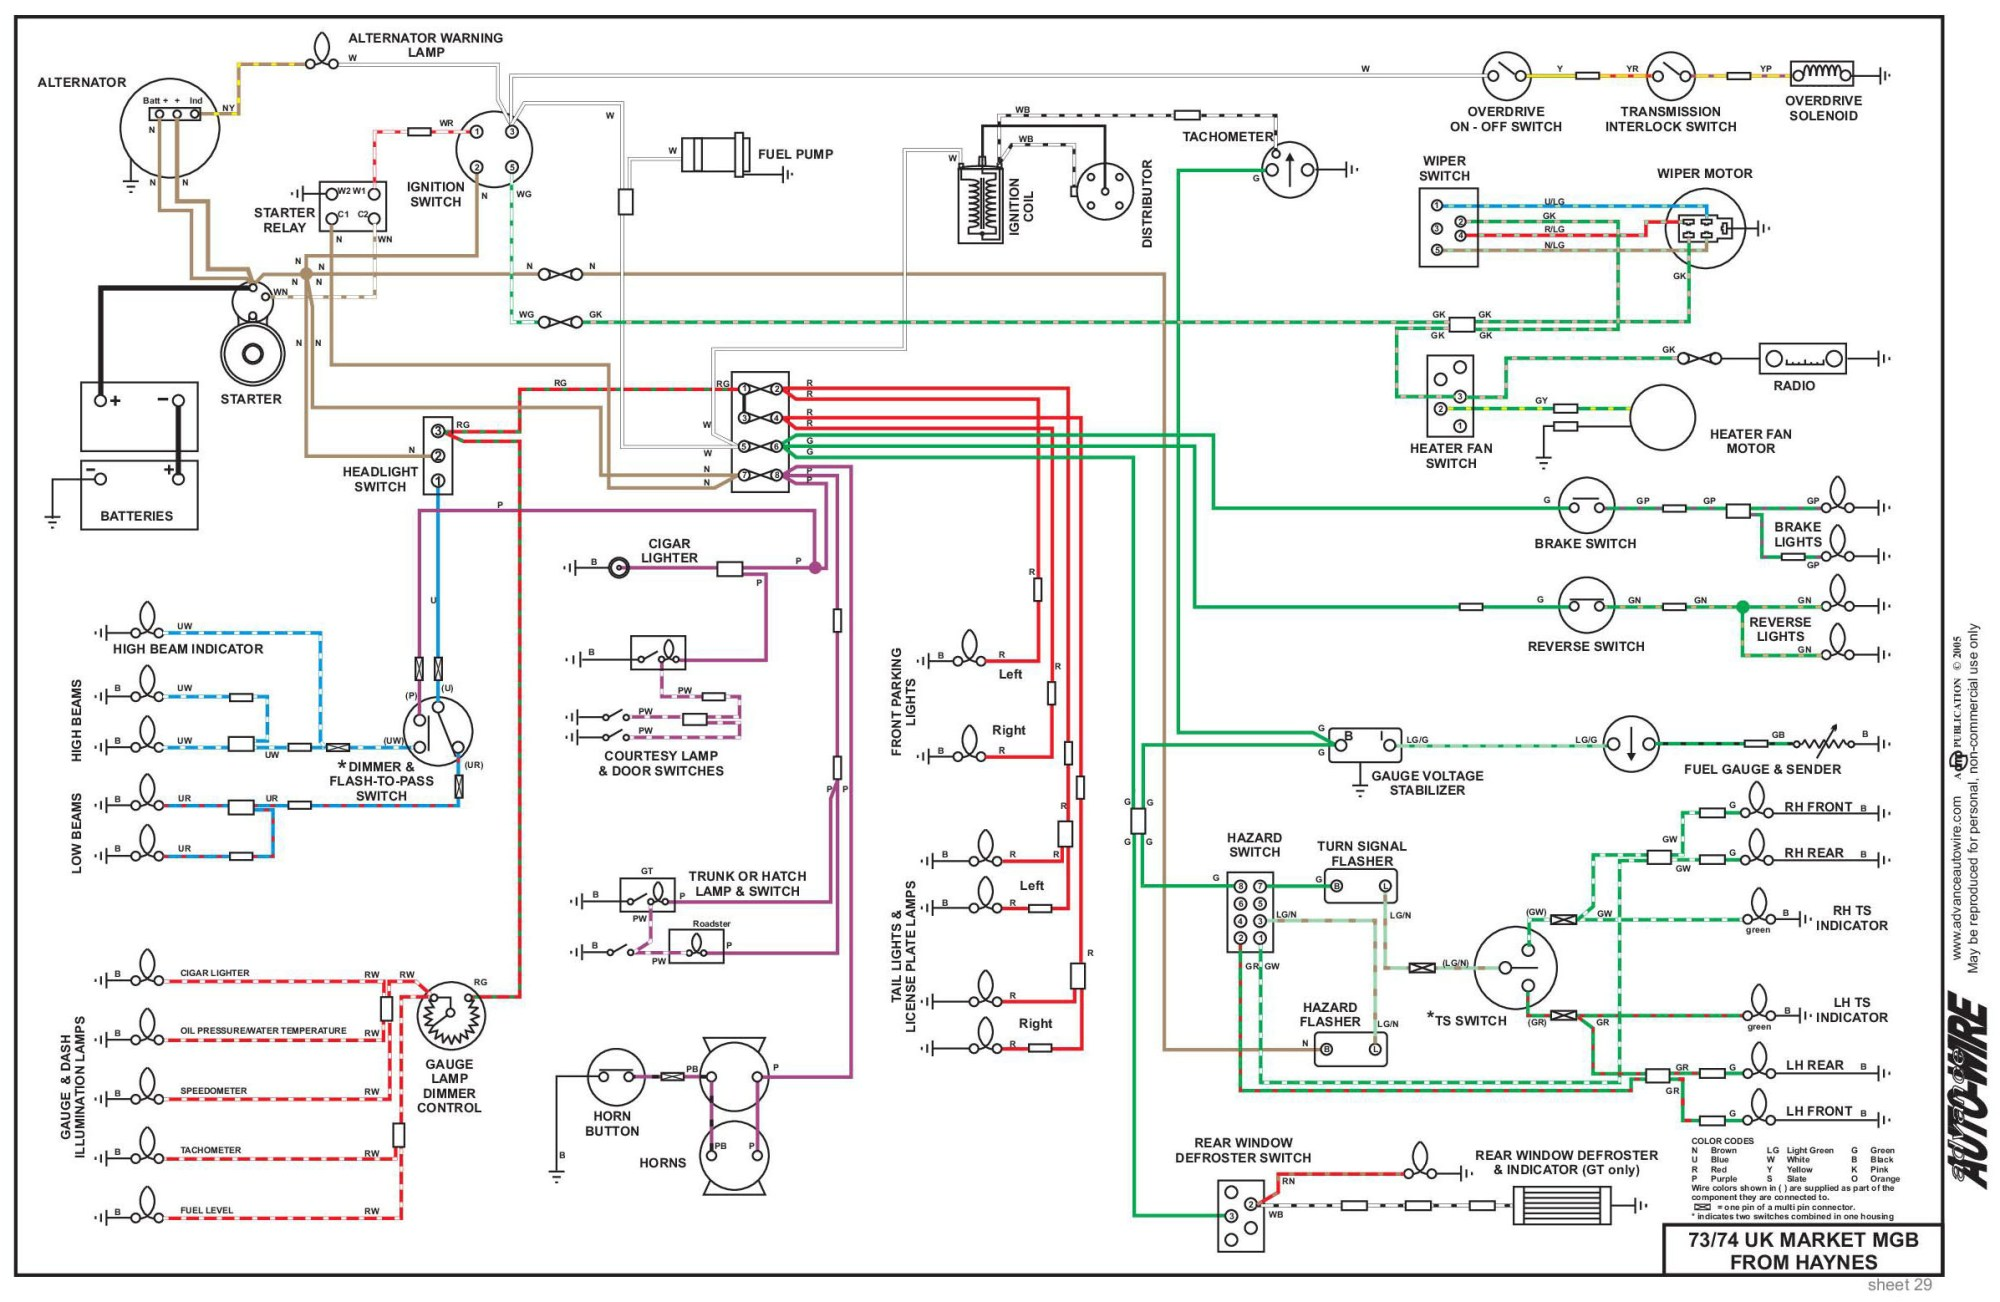 hight resolution of electrical system 73 74 uk market mgb